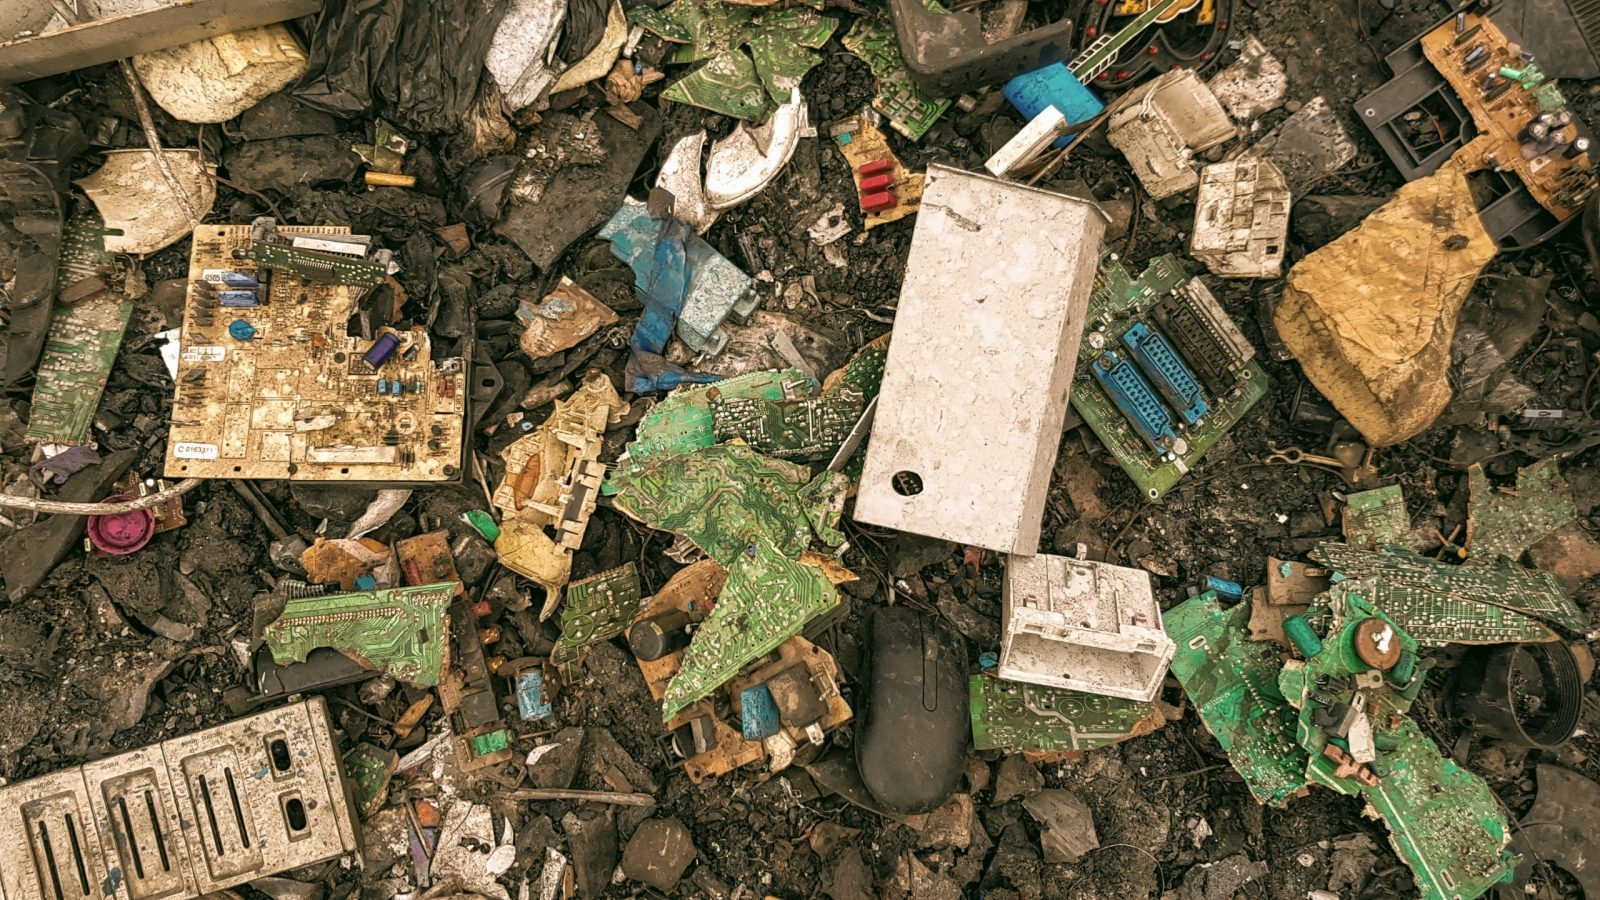 Electronic waste at Agbogbloshie, Ghana